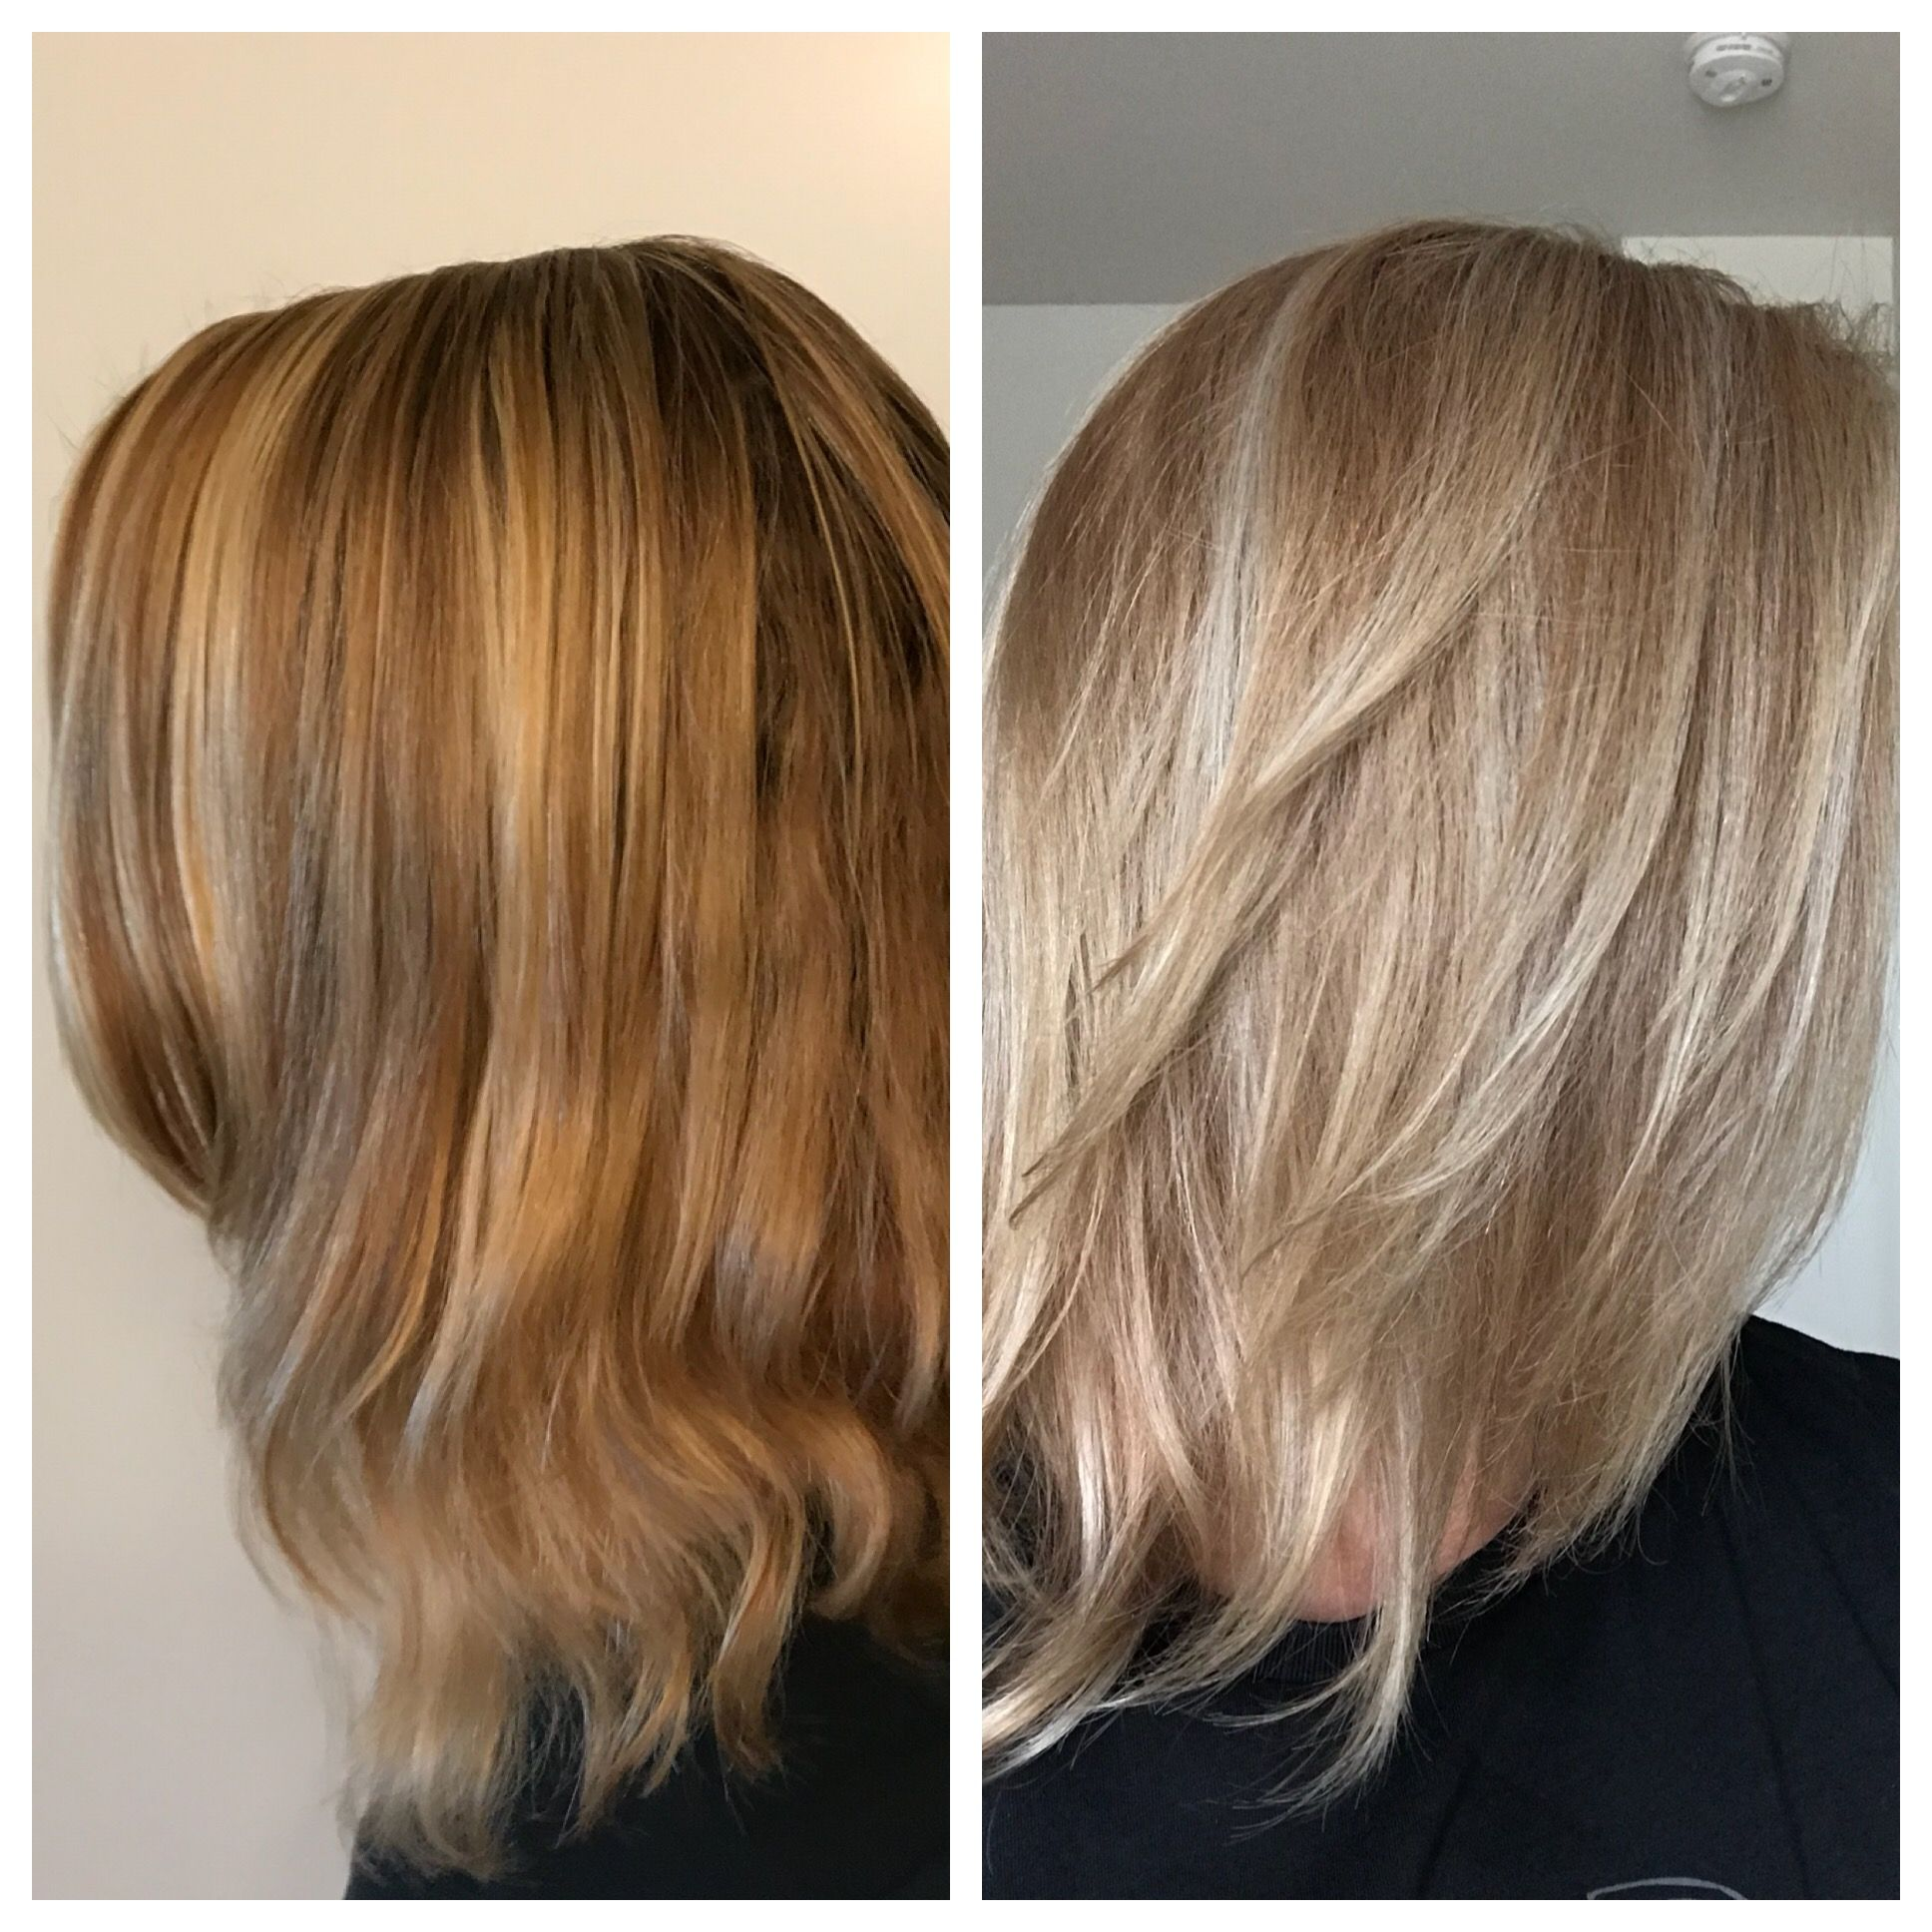 Wella Color Charm T18 Toner With 20 Developer Before And After Brassy Hair Wella Color Charm Diy Highlights Hair